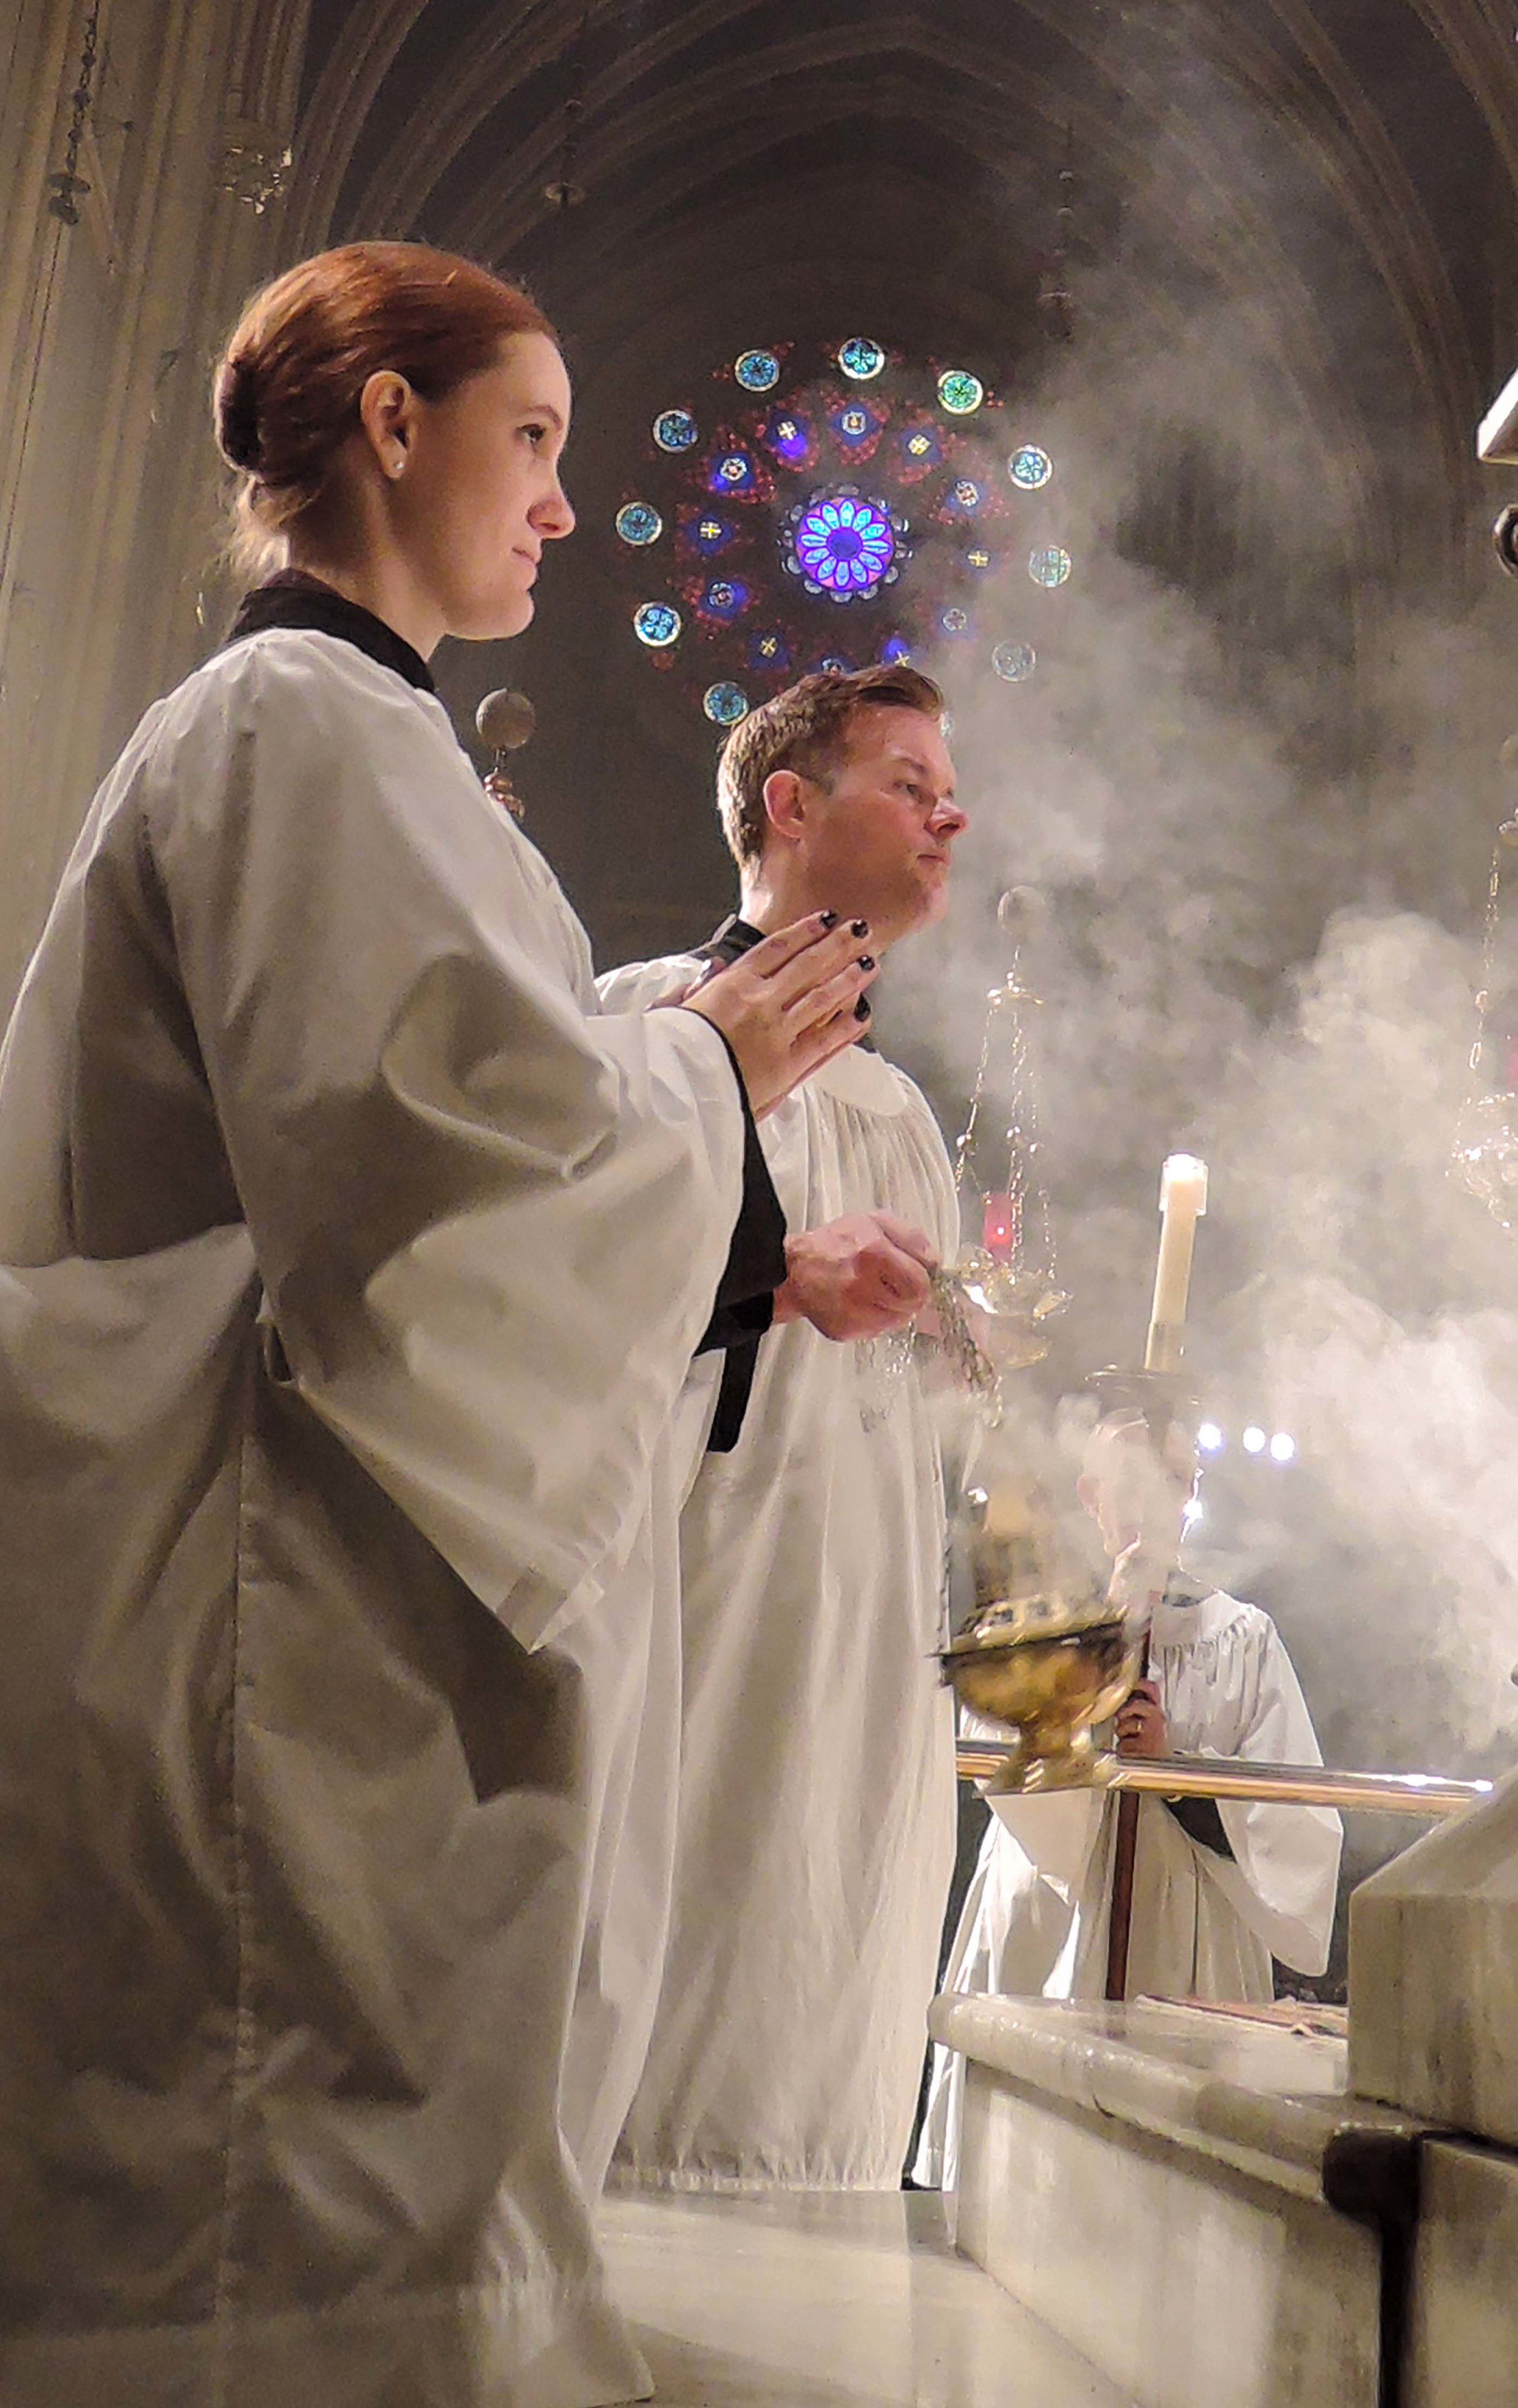 Grace Mudd and Clark Mitchell during Solemn Mass last Sunday